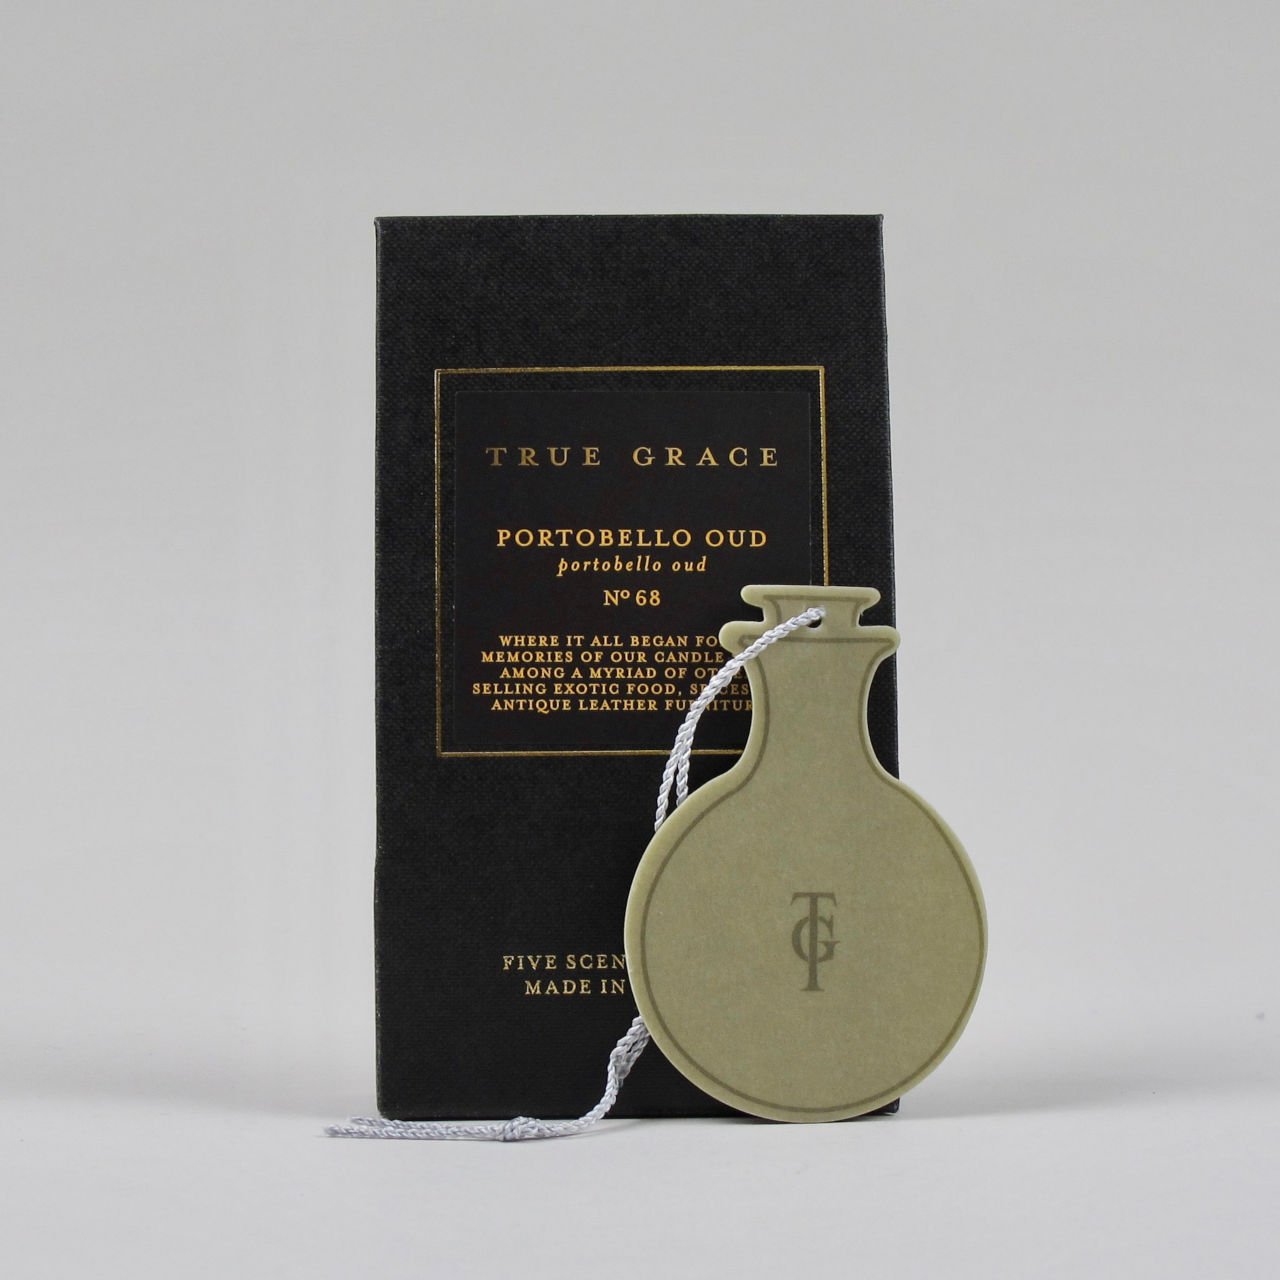 Scented Leaves by True Grace - Portobello Oud